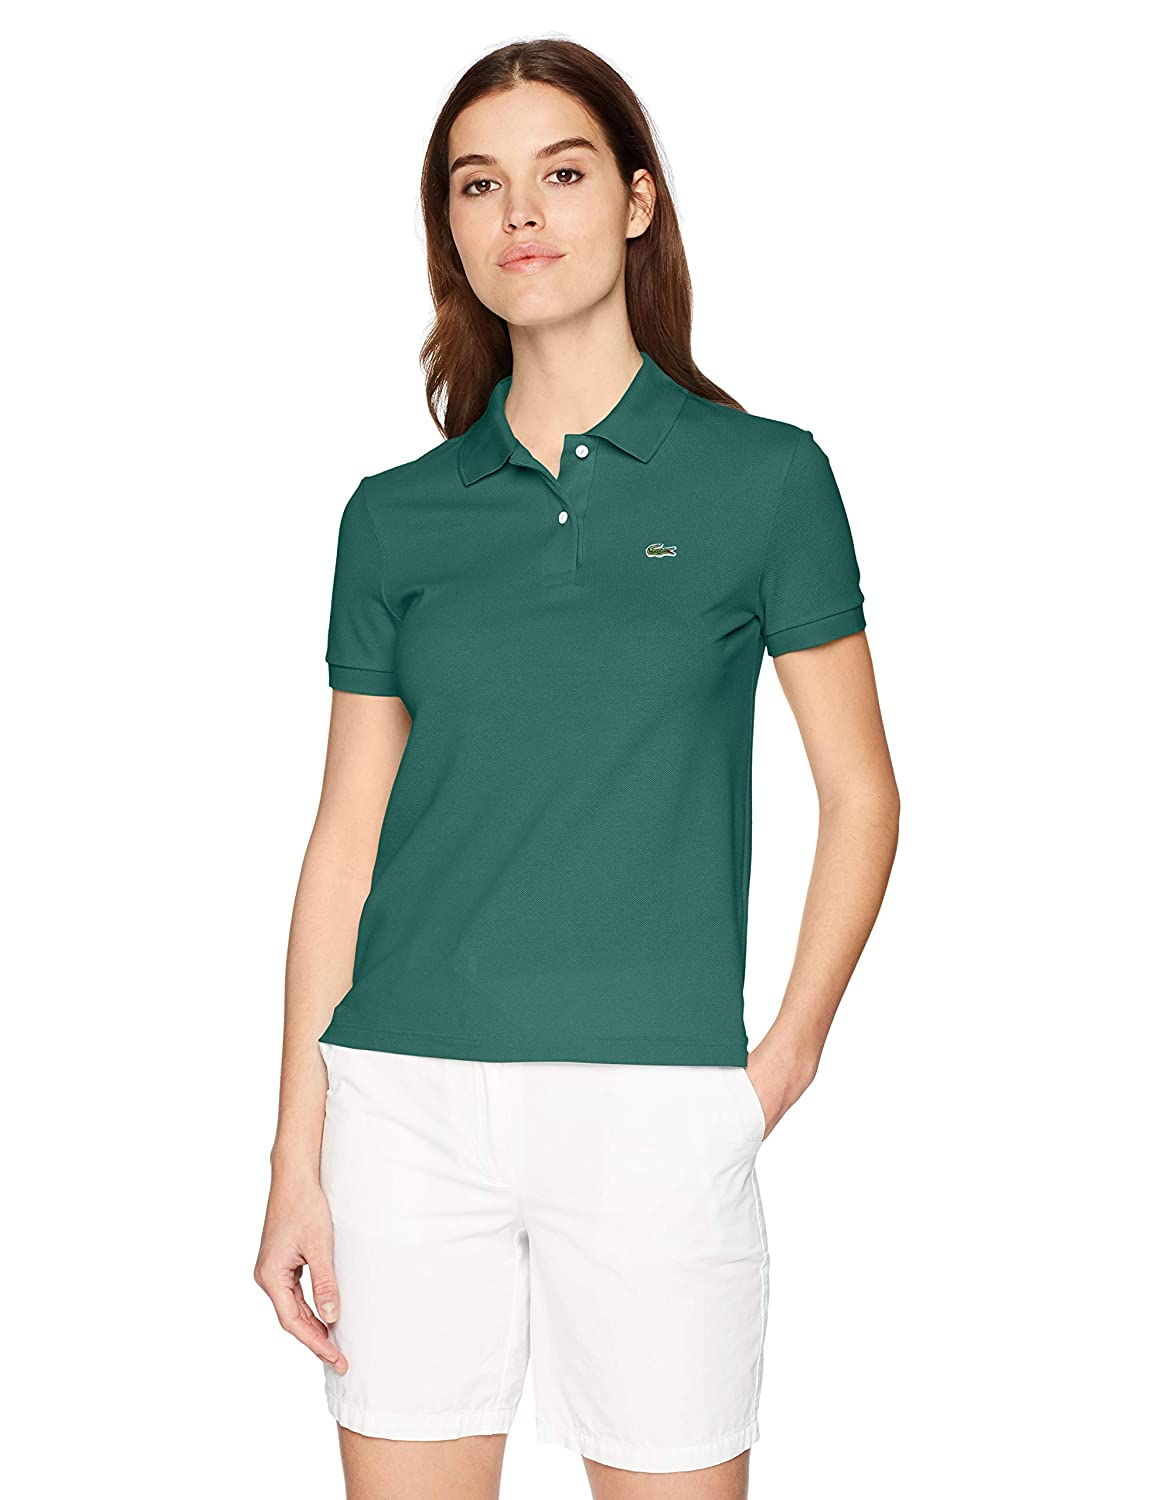 70cba3011 Lacoste Women s Classic Fit Short Sleeve Soft Cotton Petit Piqué Polo at  Amazon Women s Clothing store